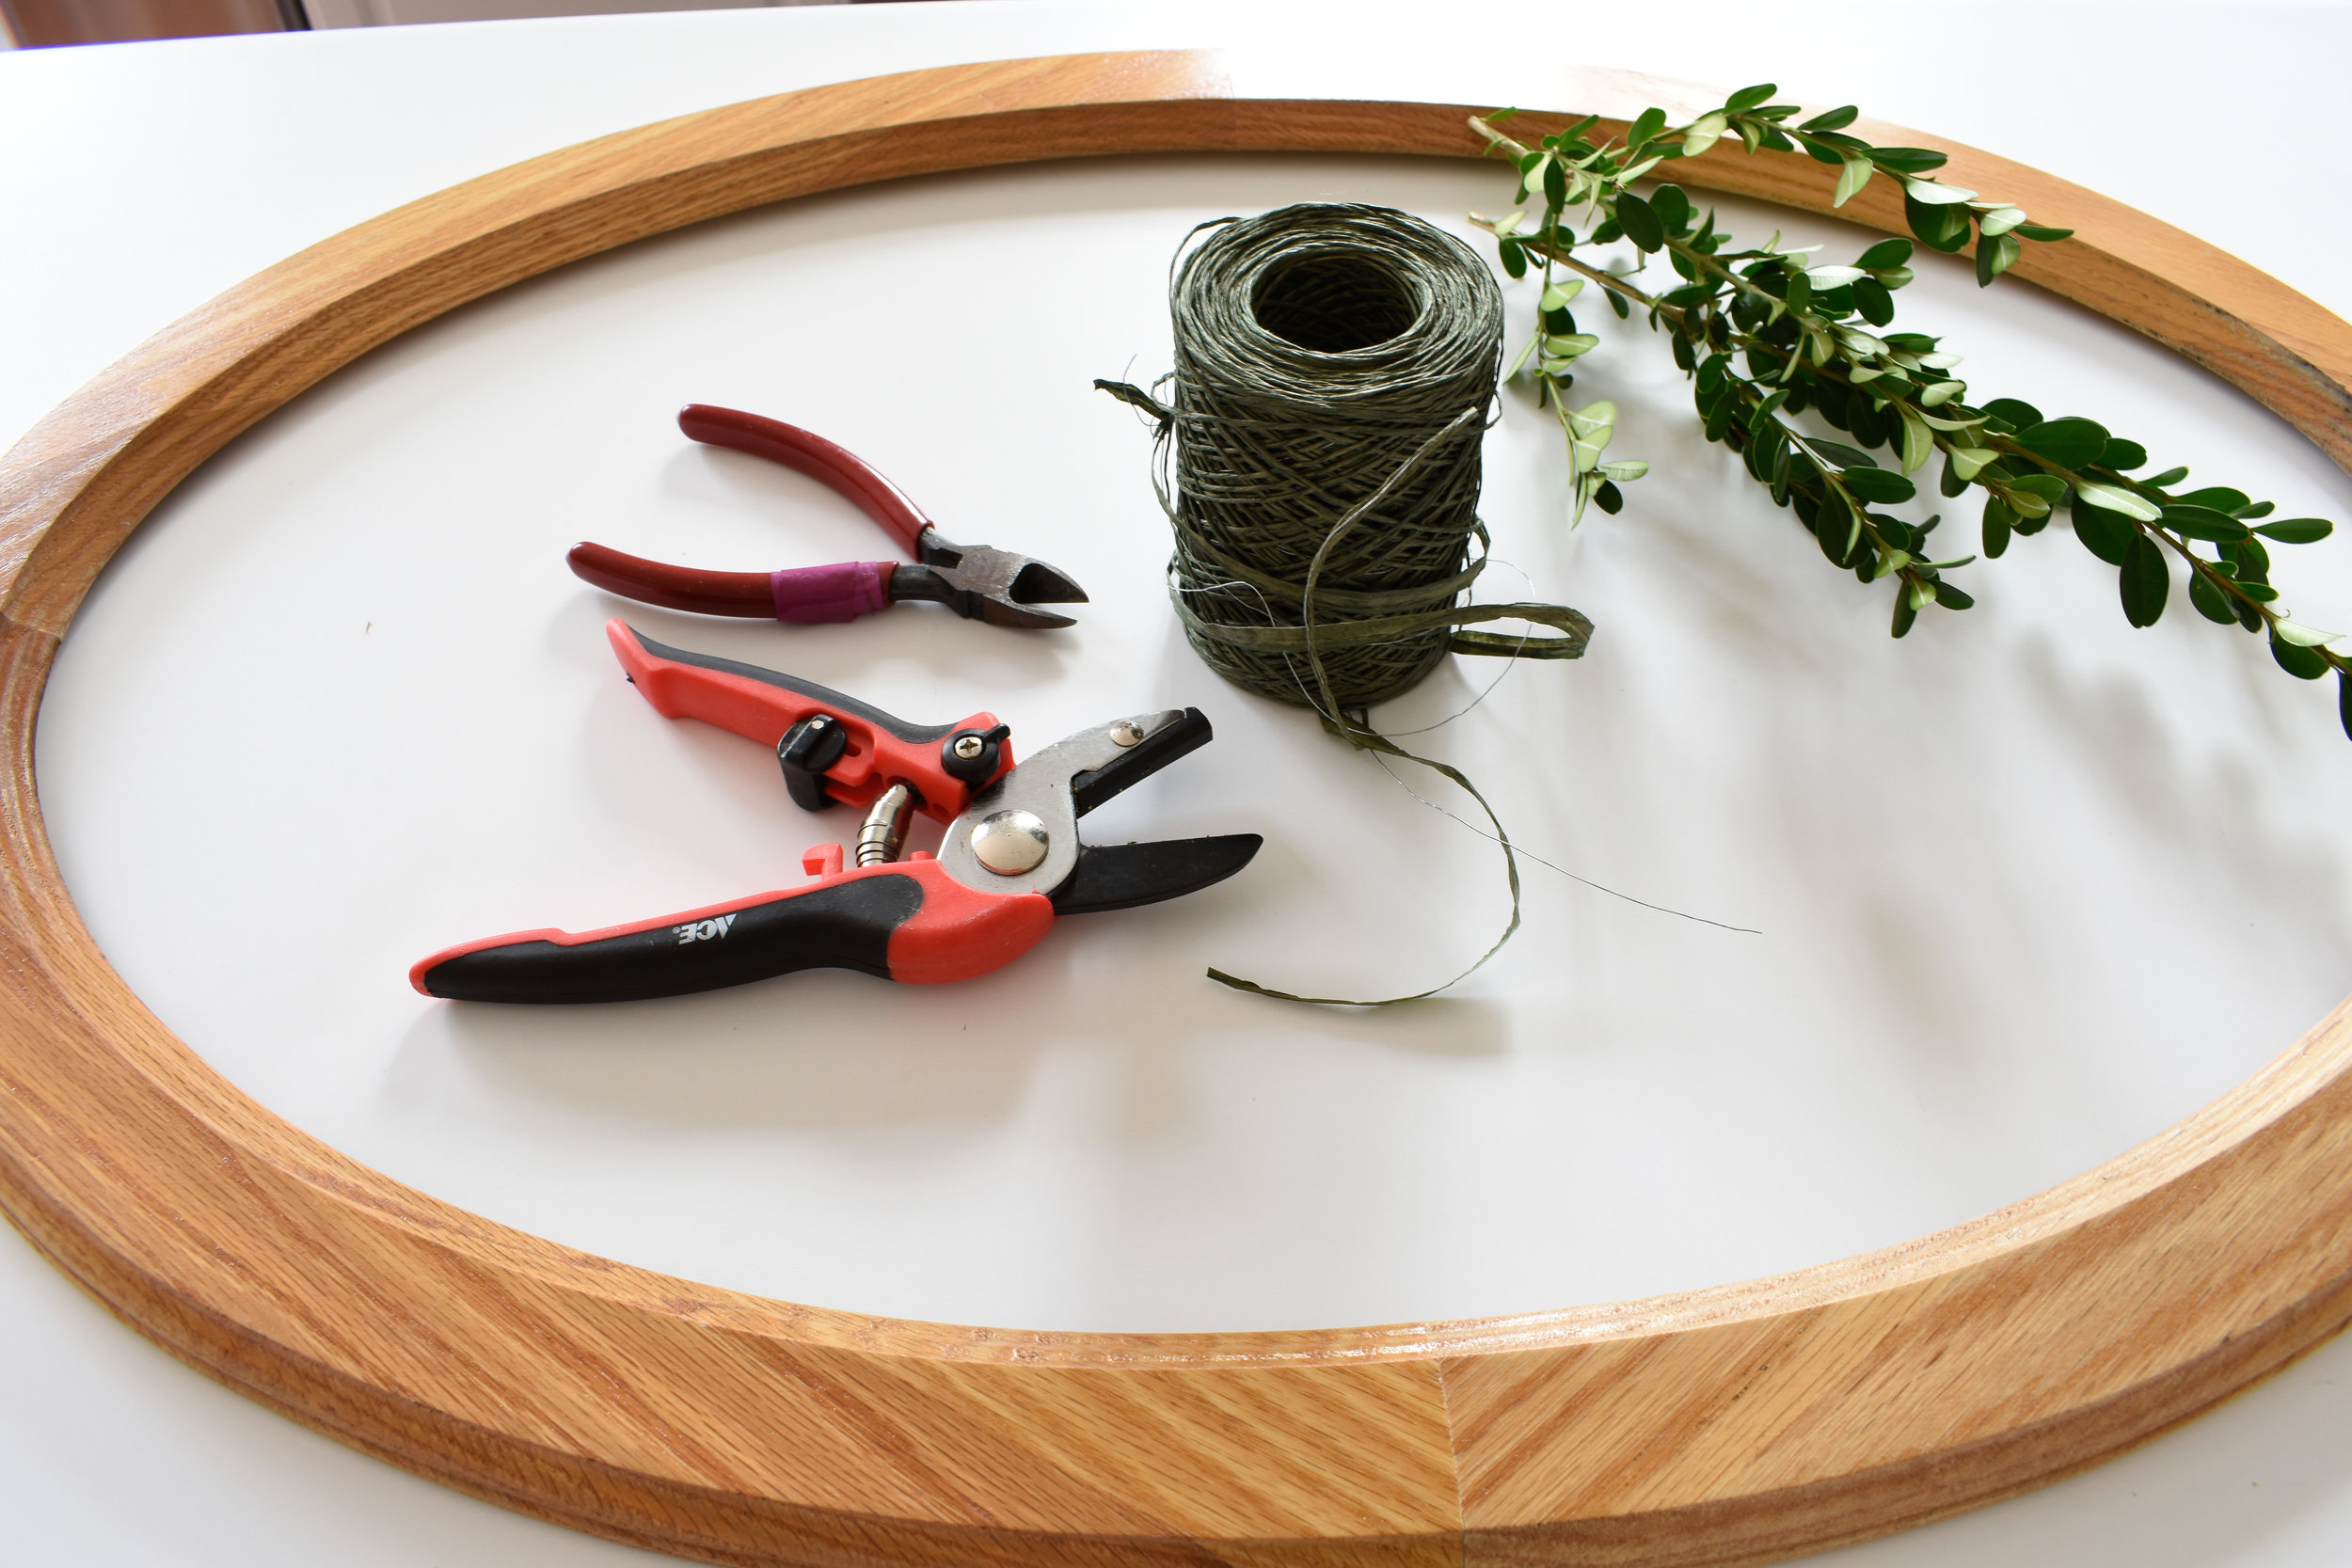 DIY boxwood wreath from old picture or mirror frame and yard clippings